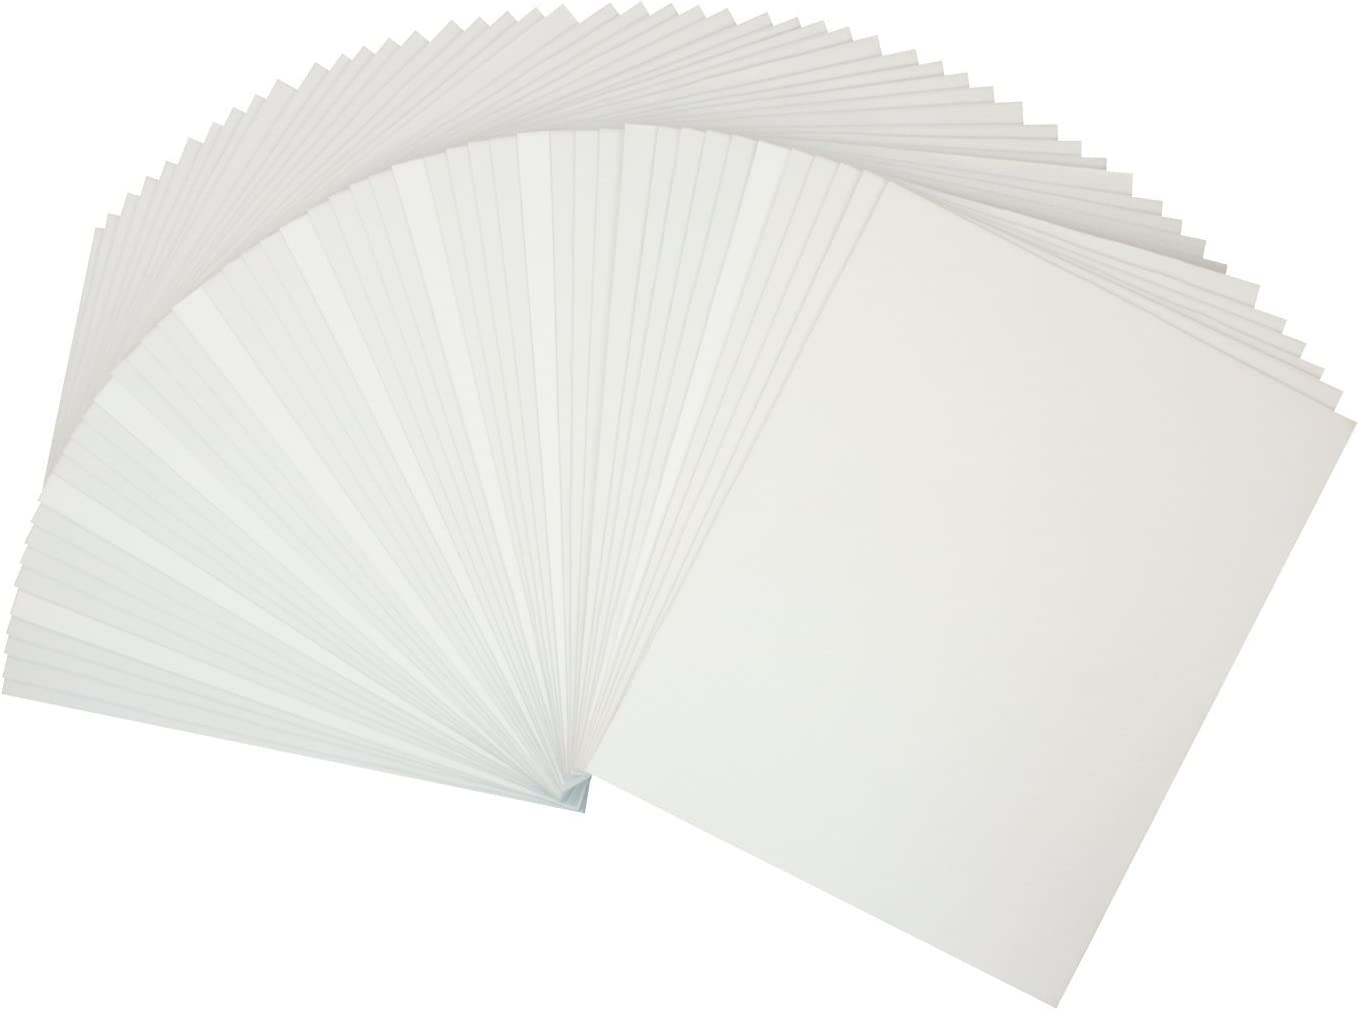 Golden State Art, Pack of 50 8x10 Backing Boards